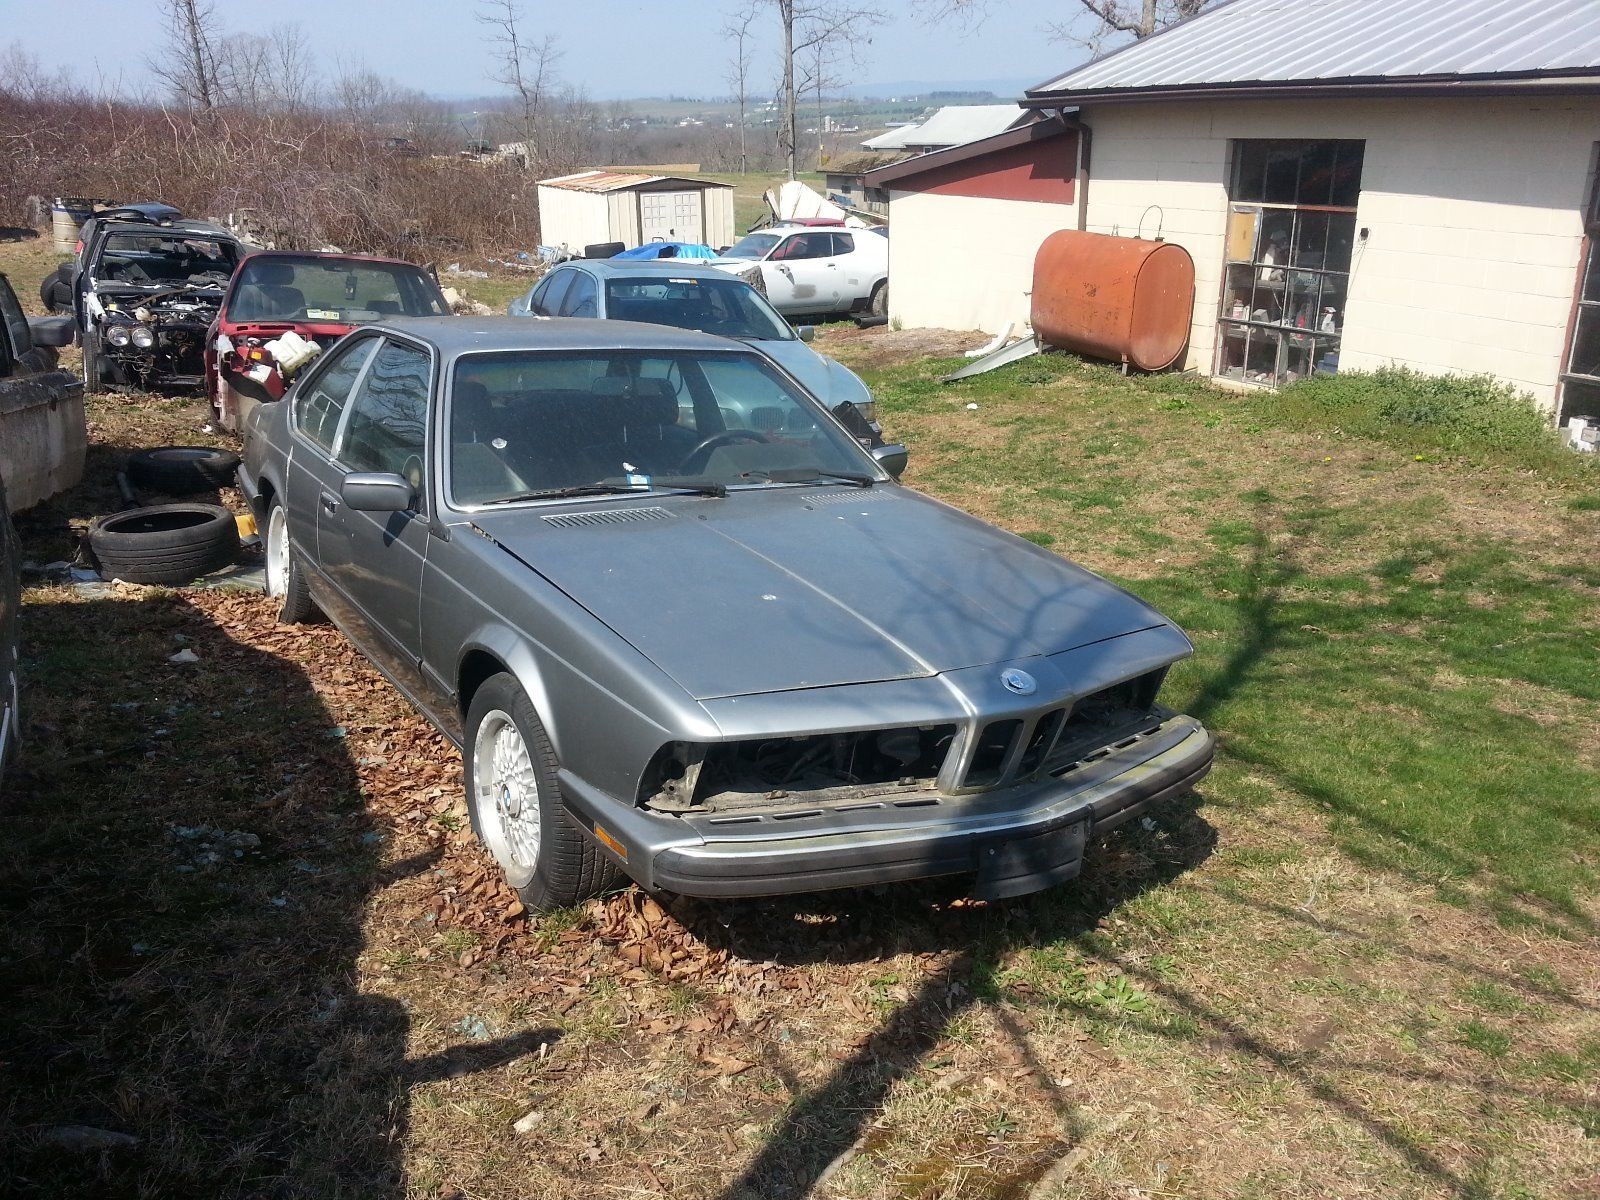 1988 Bmw E24 635 Csi Parts Car For Sale